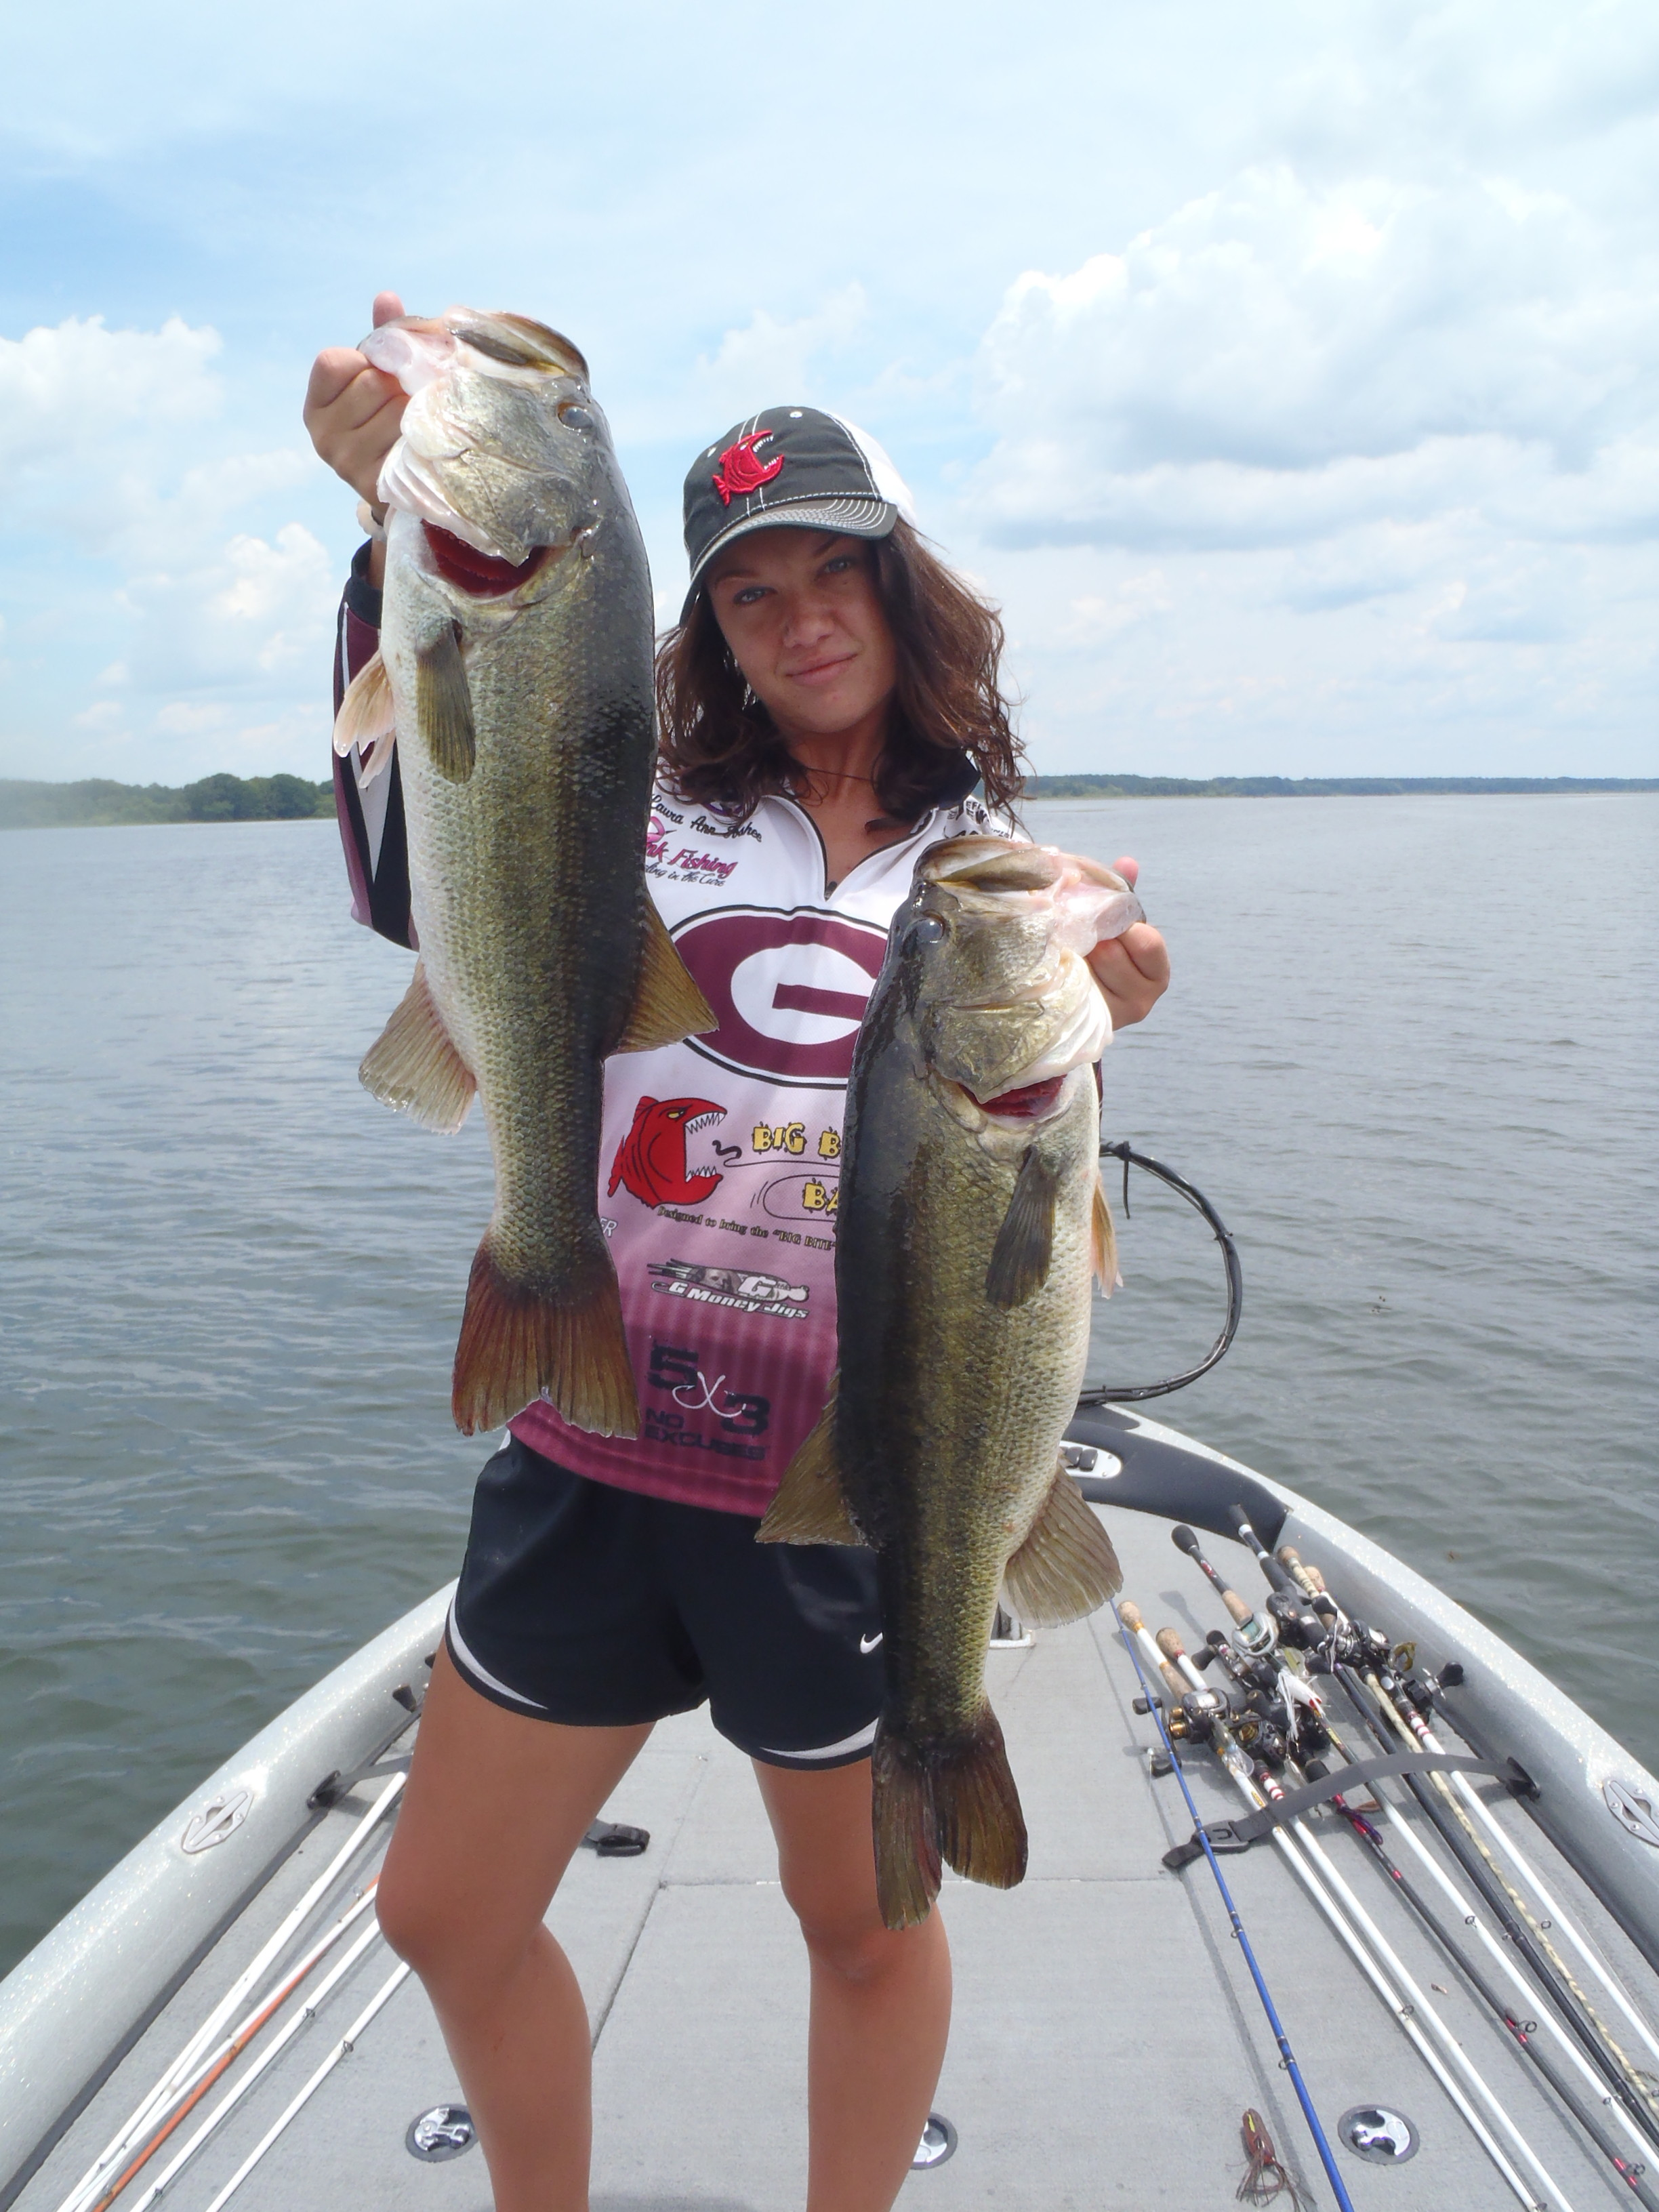 How to fish about fishing part 5 laura ann foshee with two five pound lake seminole bass fandeluxe Choice Image